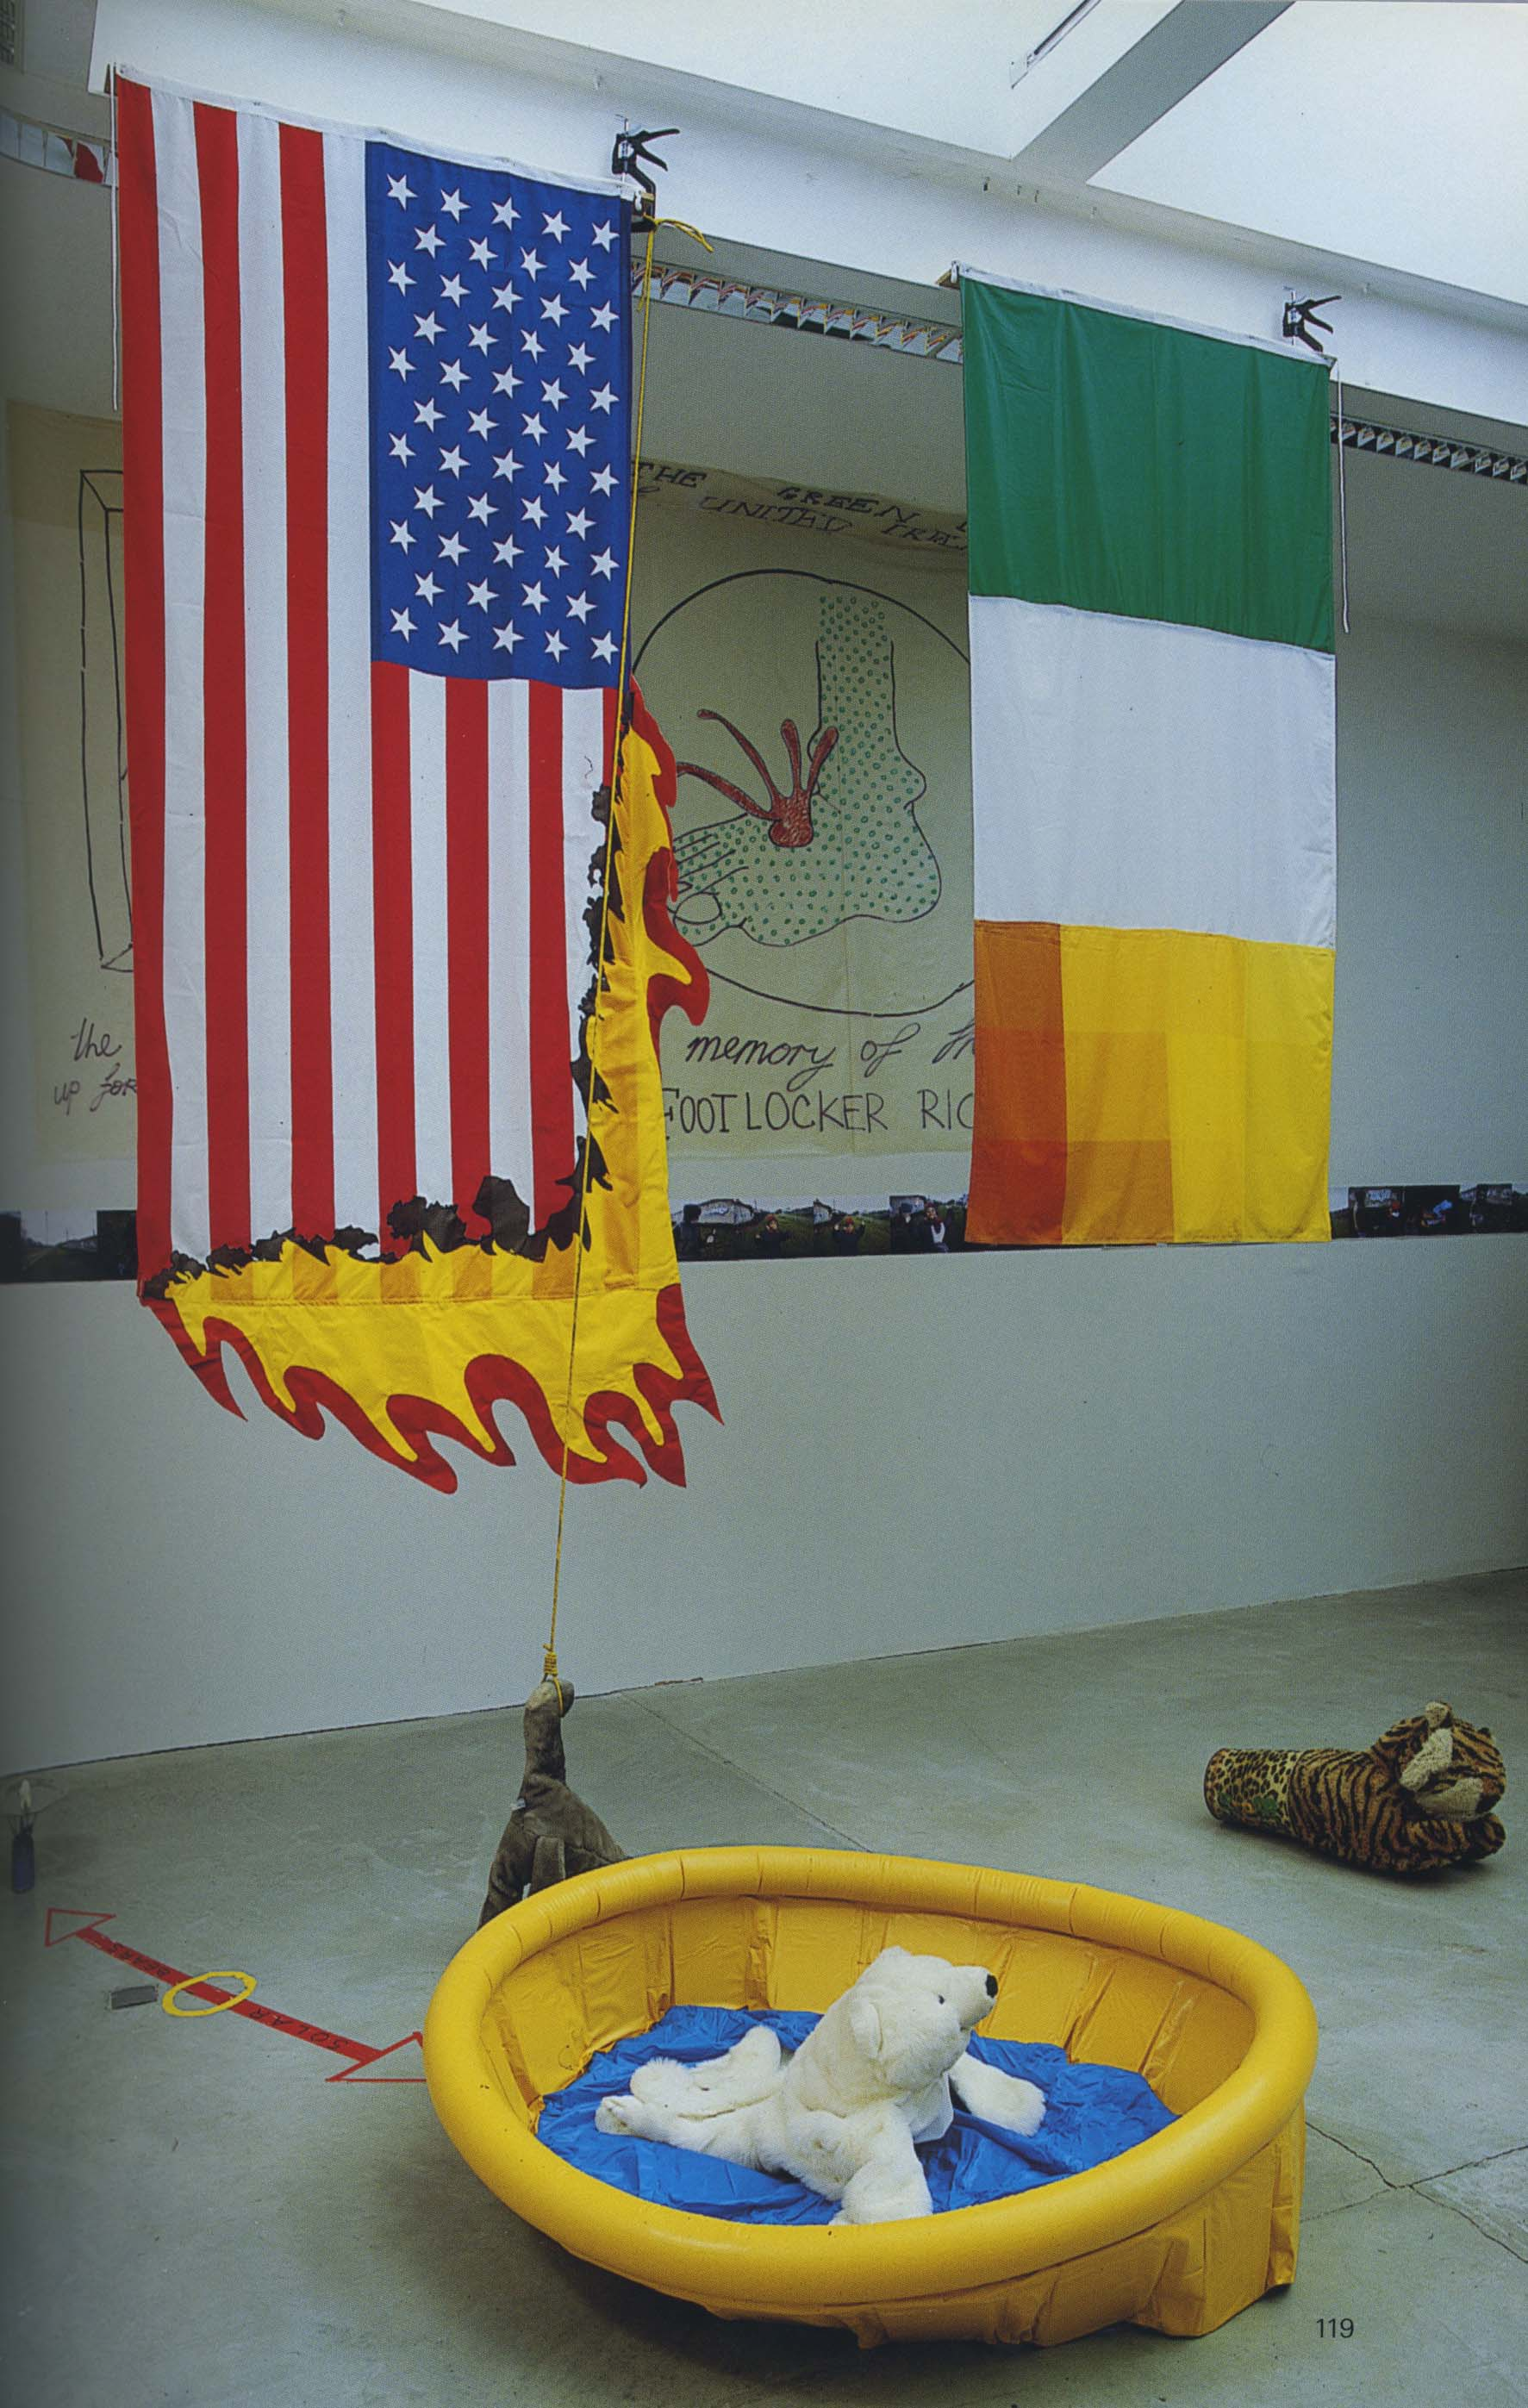 Nevart Lahart, Every Man, Woman and Child for themselves and God against All, 2006, installation, dimensions variable